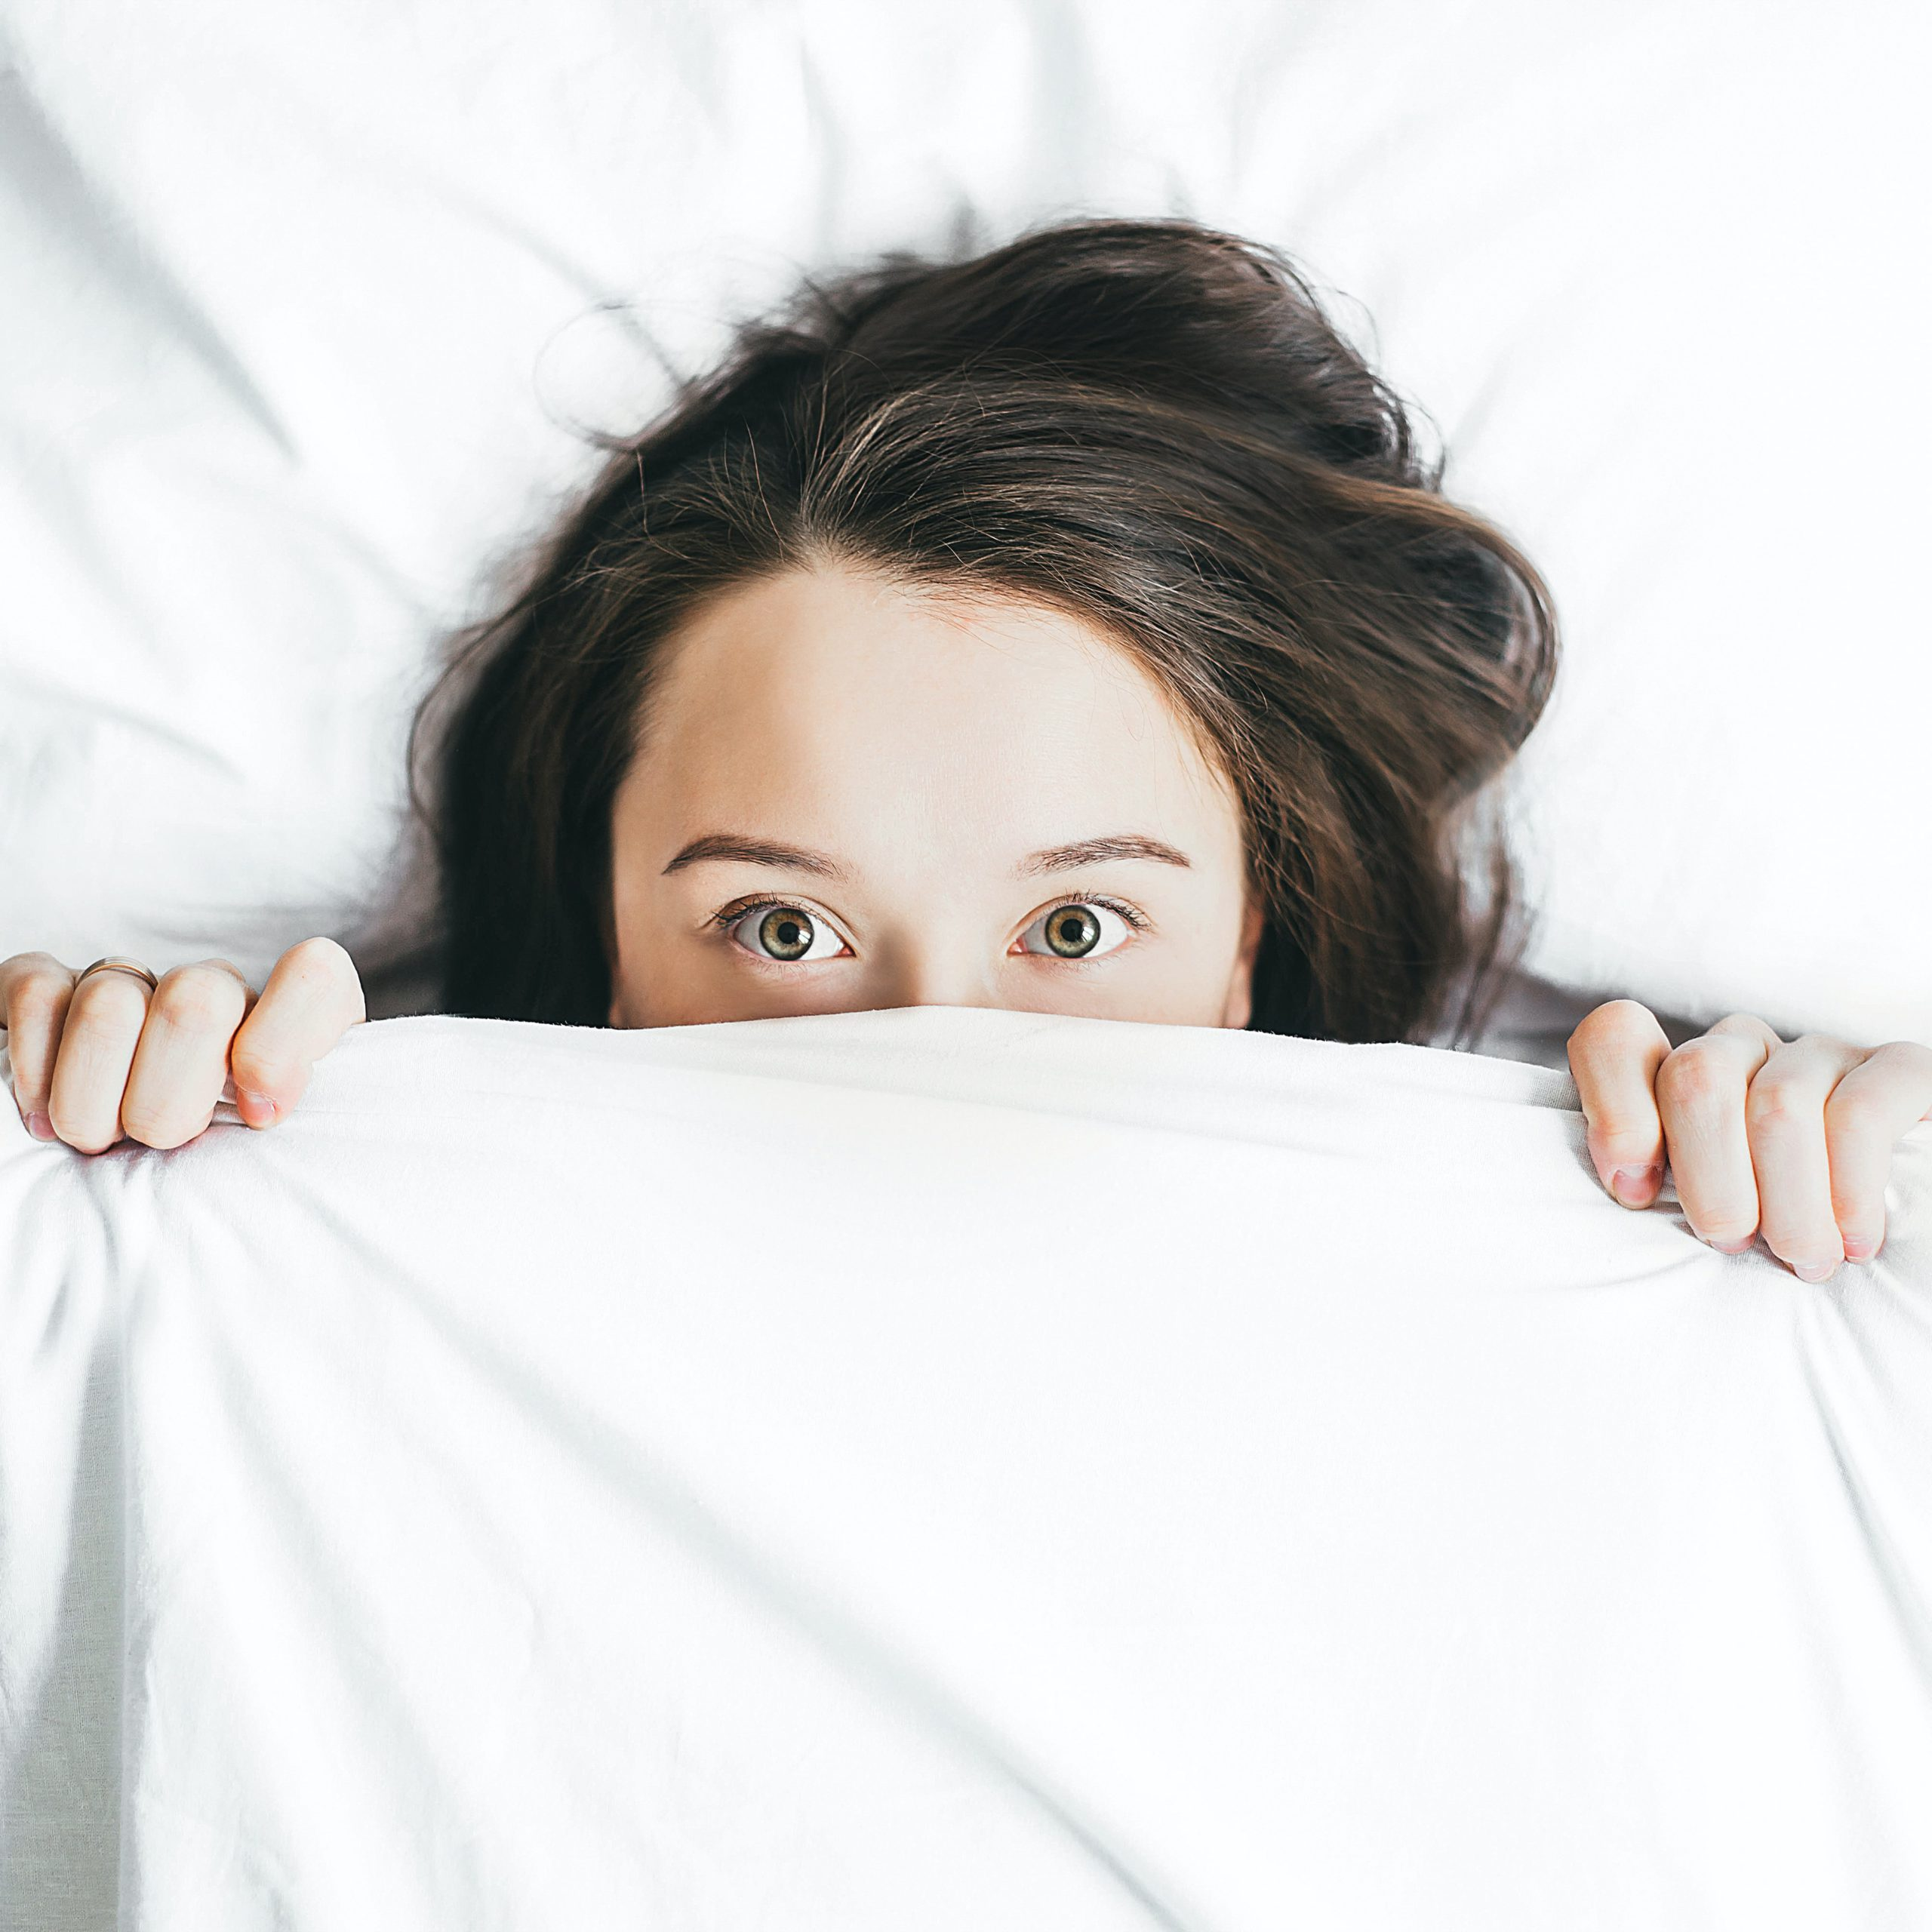 Sleep Depravation can be a side effect for those with type 1 diabetes